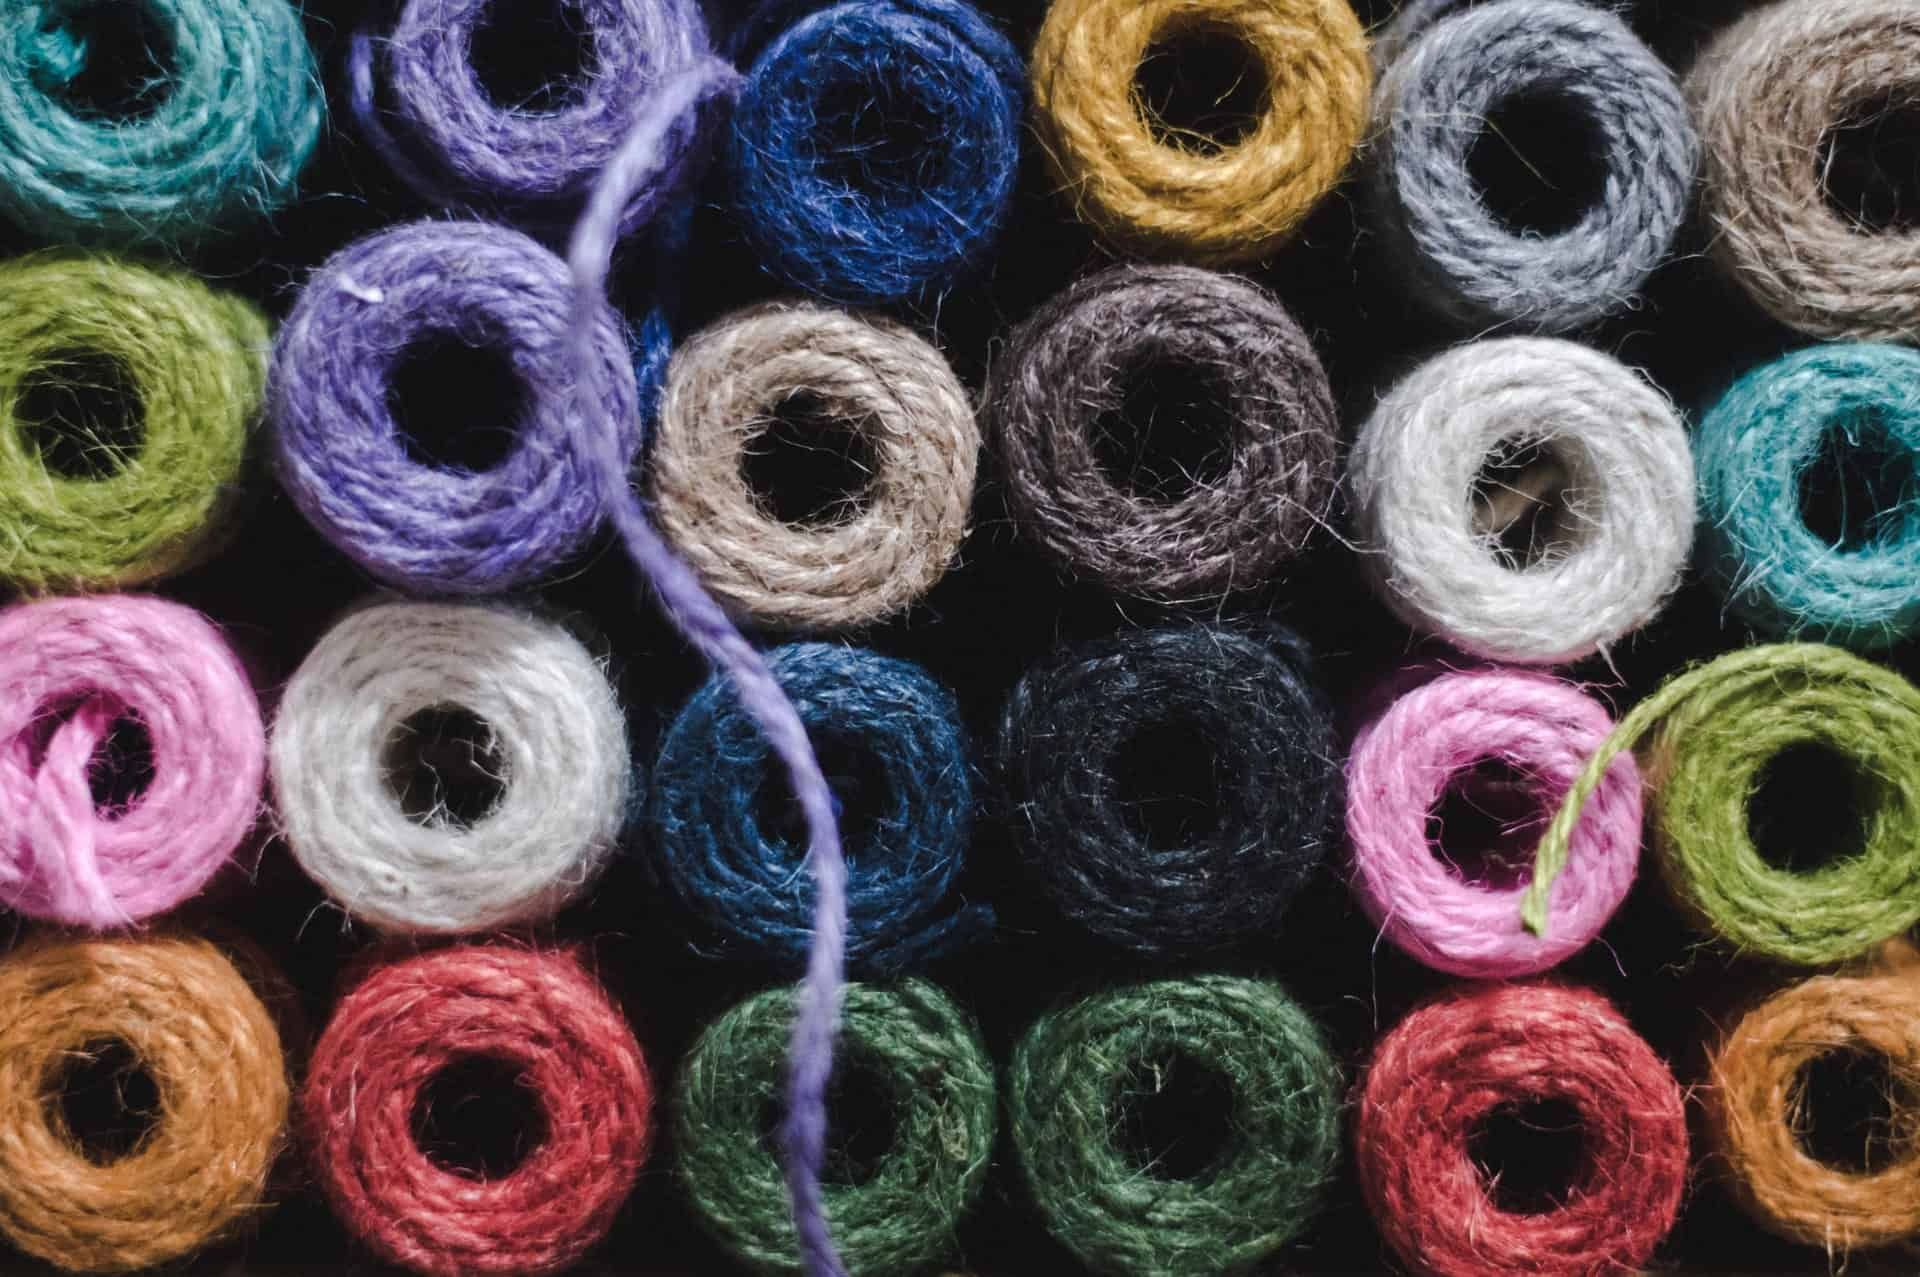 A variety of yarn for textile production